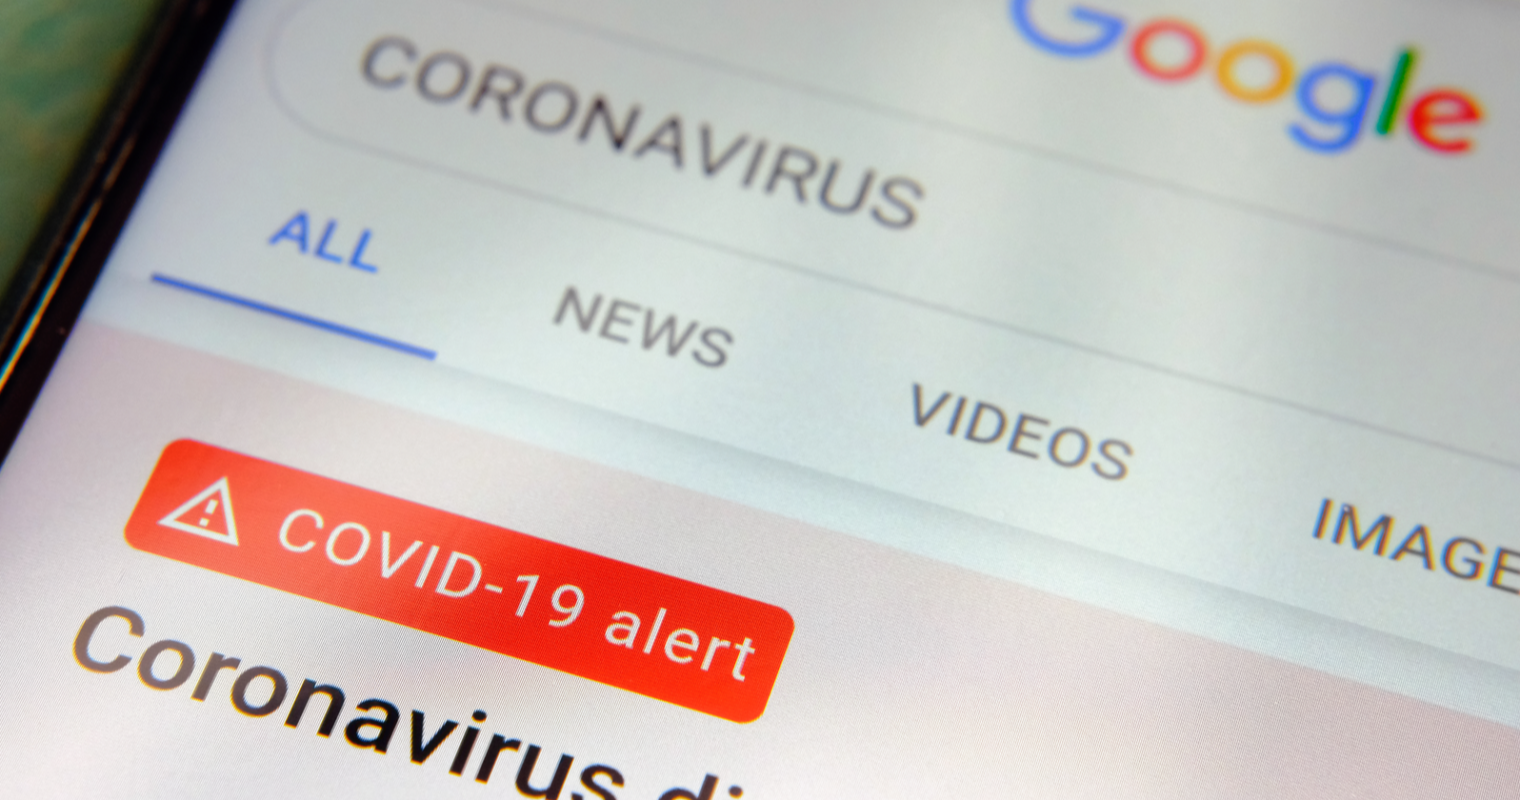 Google Reveals What COVID-19 Special Announcement Schema Looks Like in Search